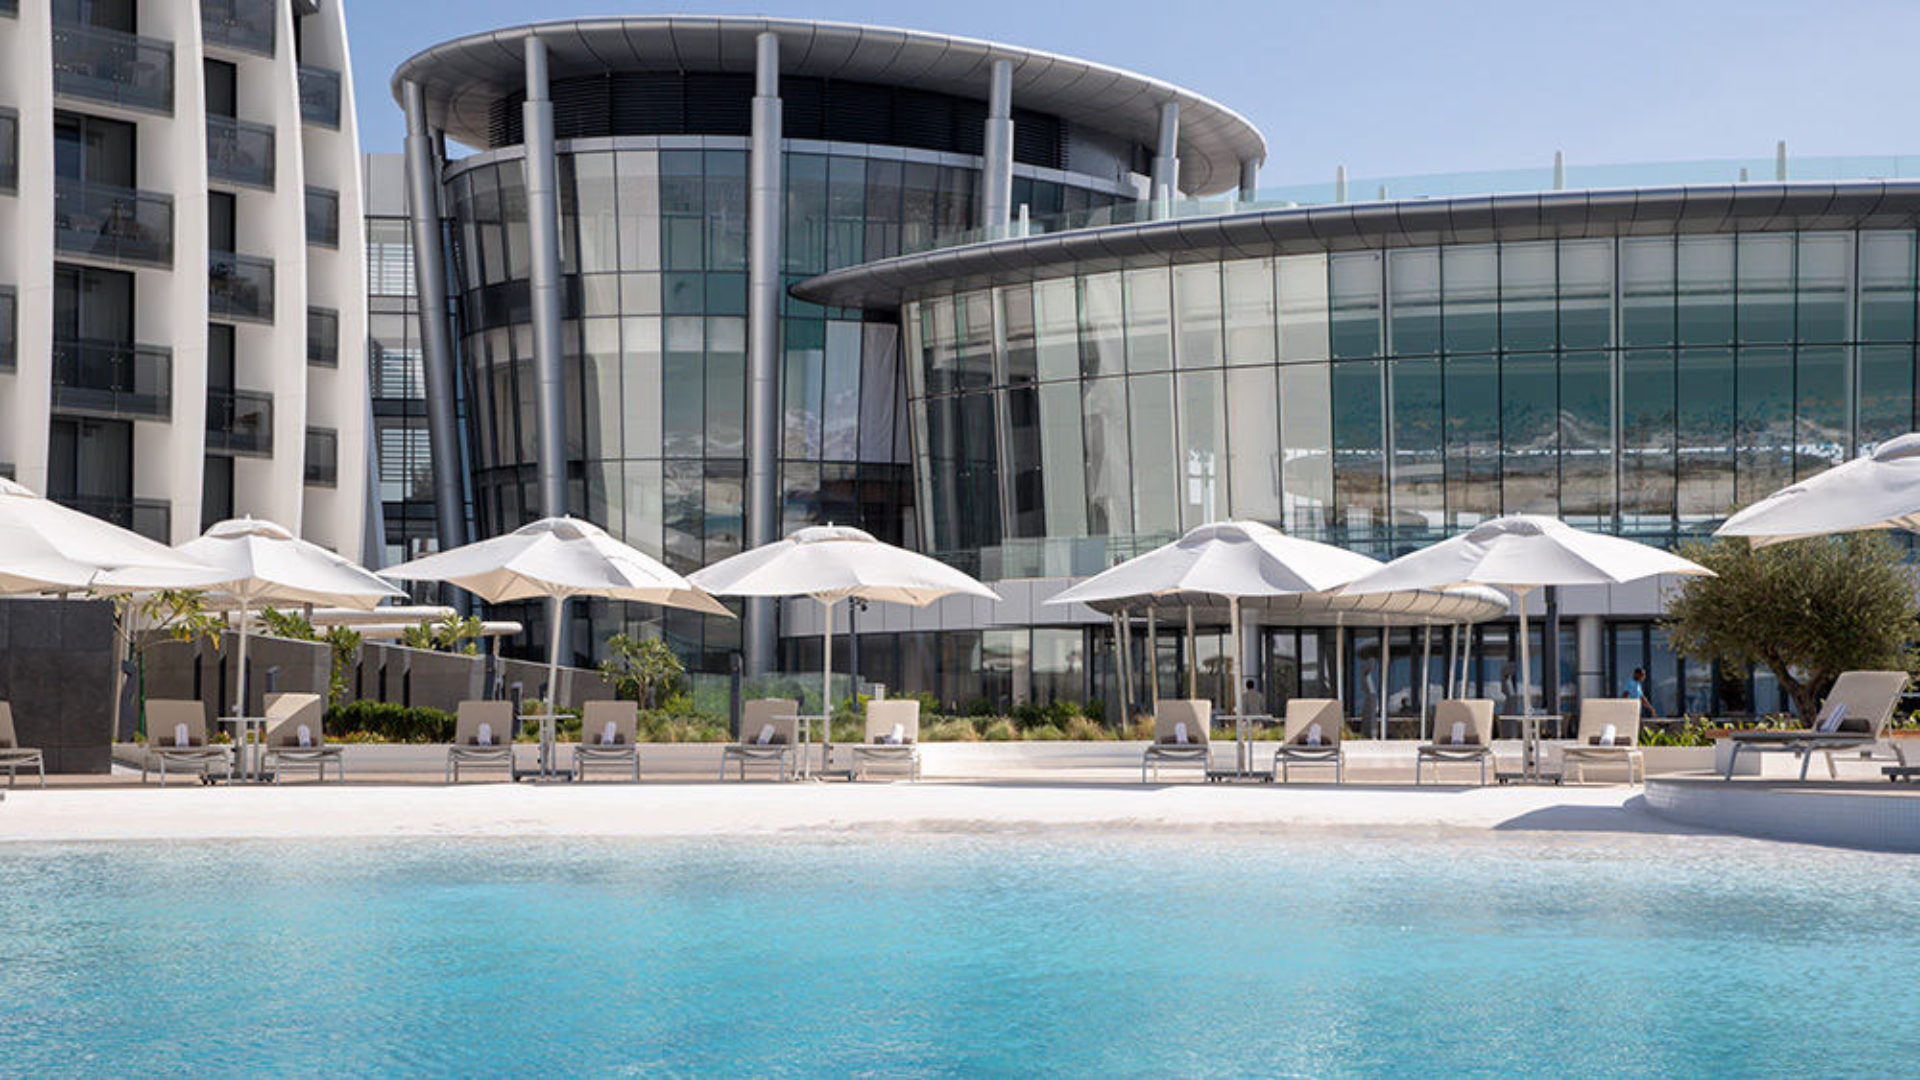 Outdoor pool at Jumeirah at Saadiyat Island